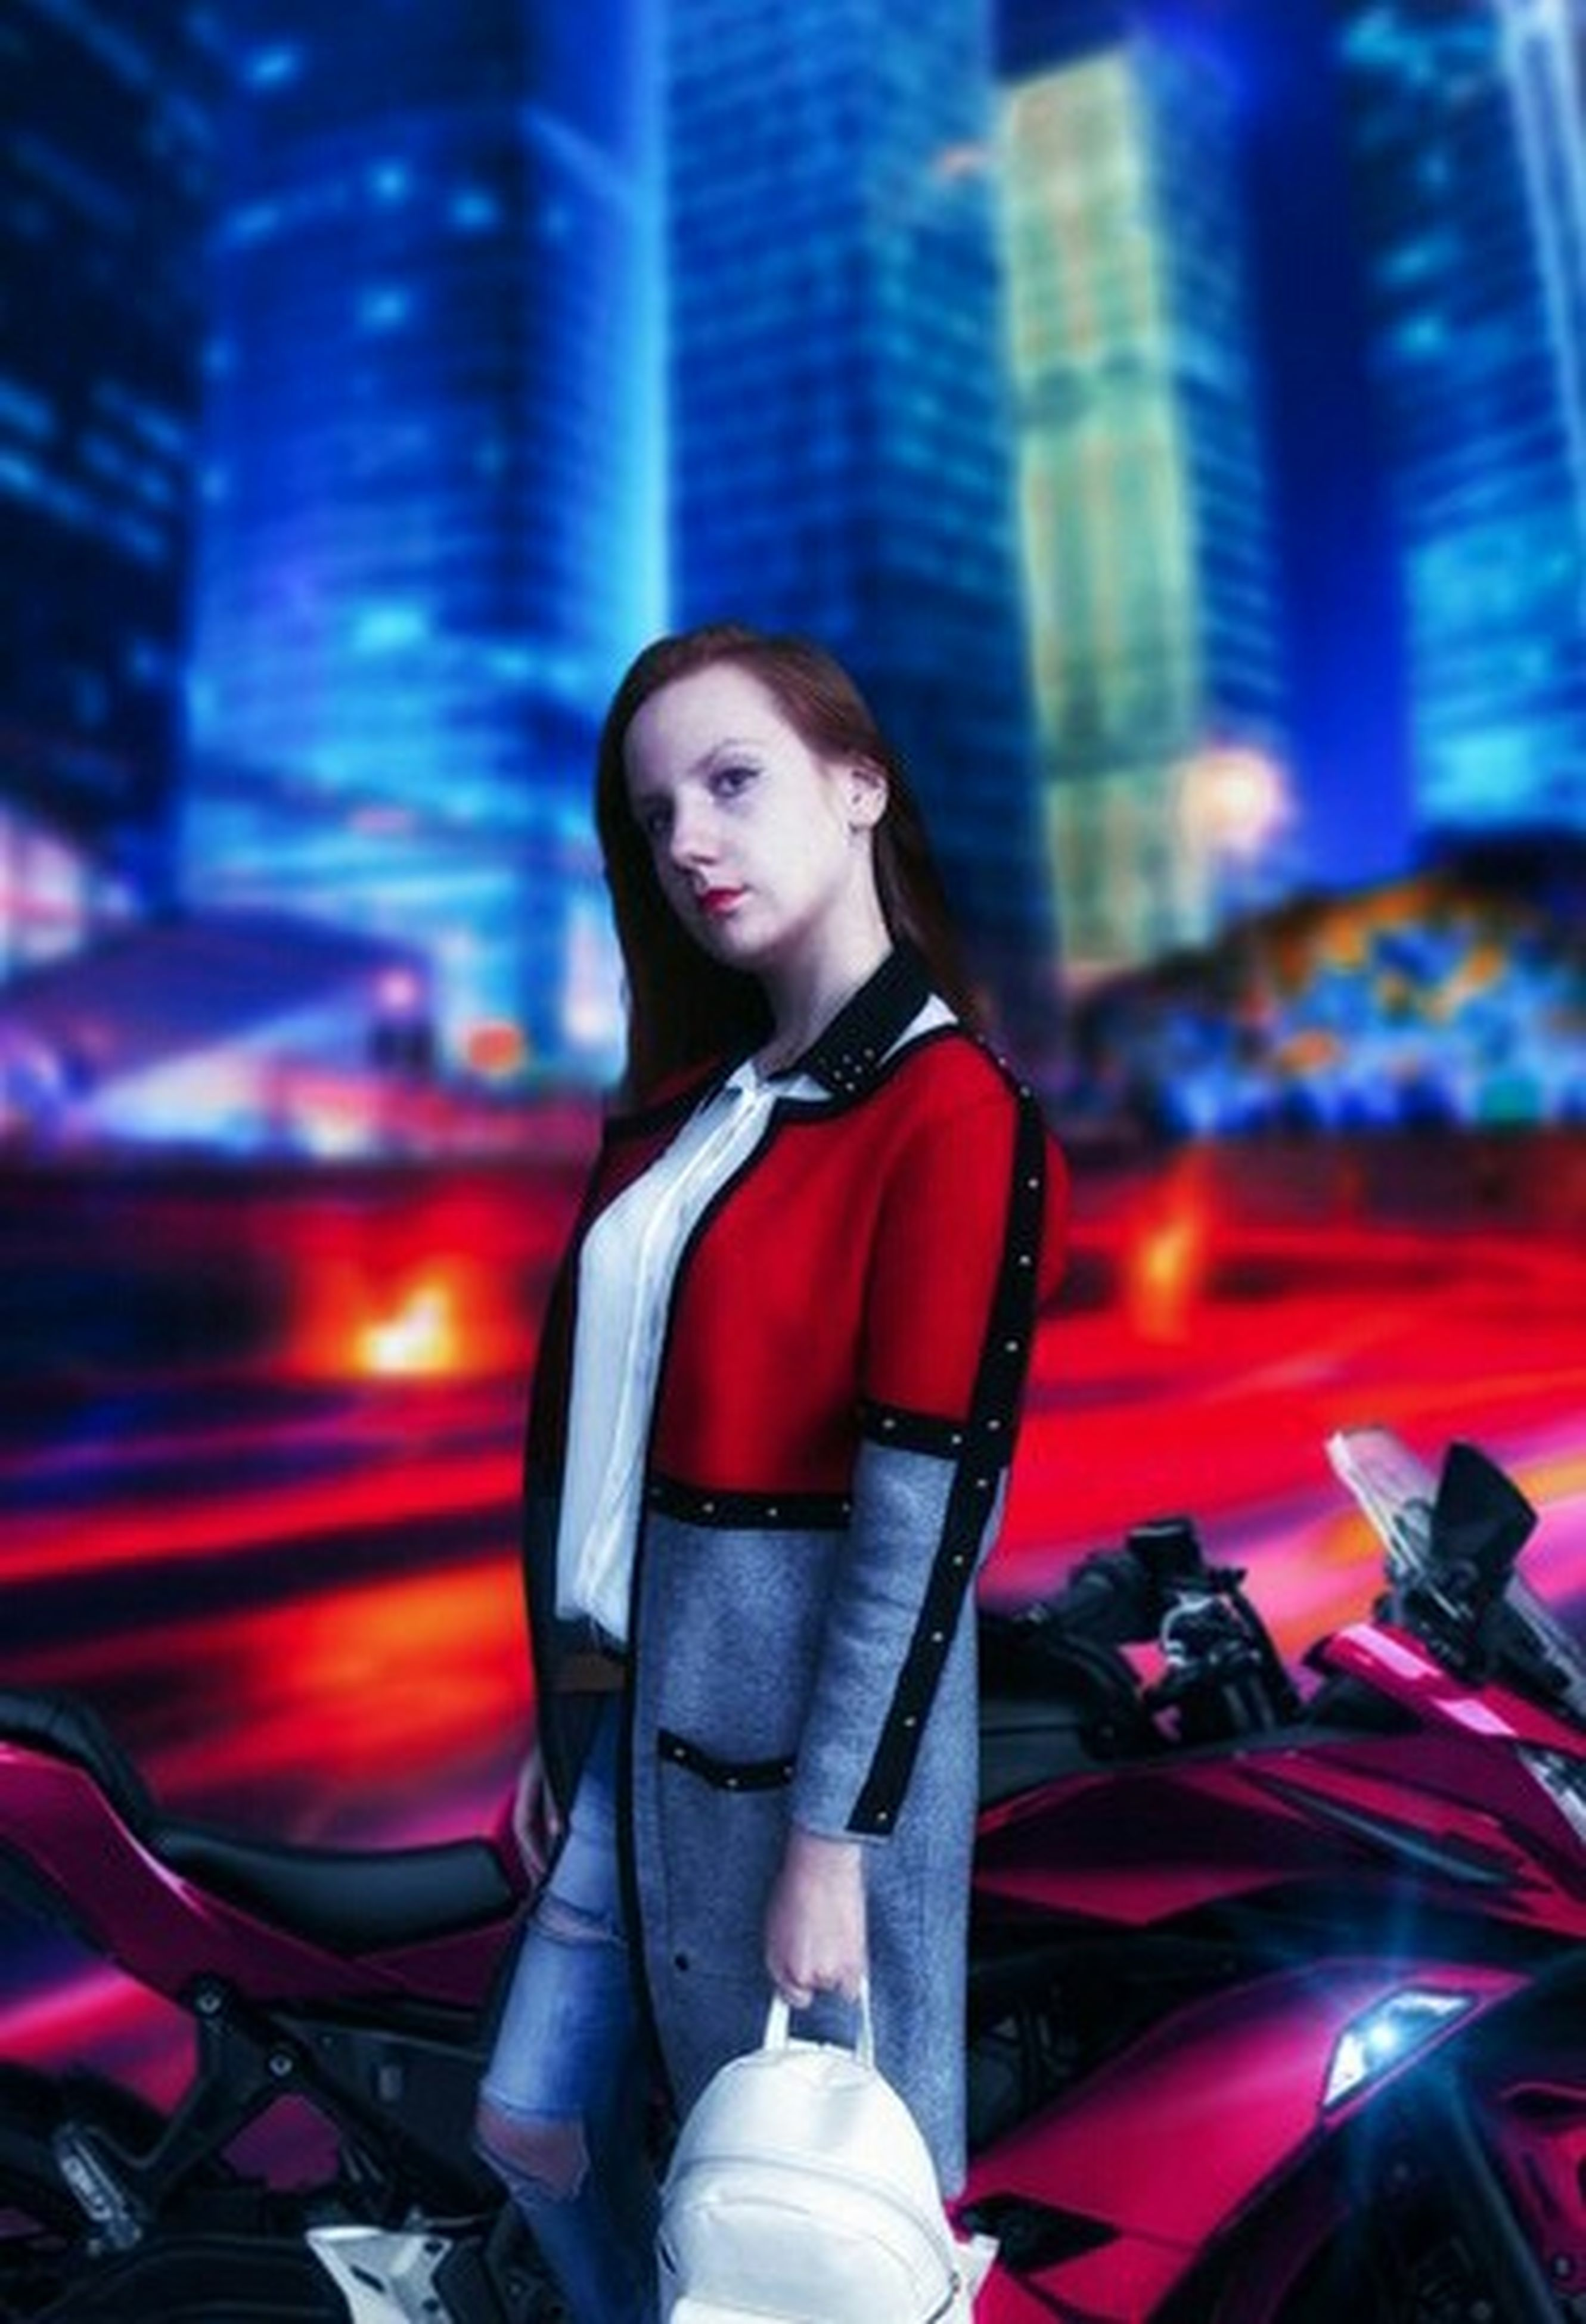 night, young adult, one person, one woman only, adults only, one young woman only, adult, only women, illuminated, city, people, city life, transportation, casual clothing, motorcycle, outdoors, standing, beauty, beautiful woman, young women, beautiful people, portrait, sitting, skyscraper, smiling